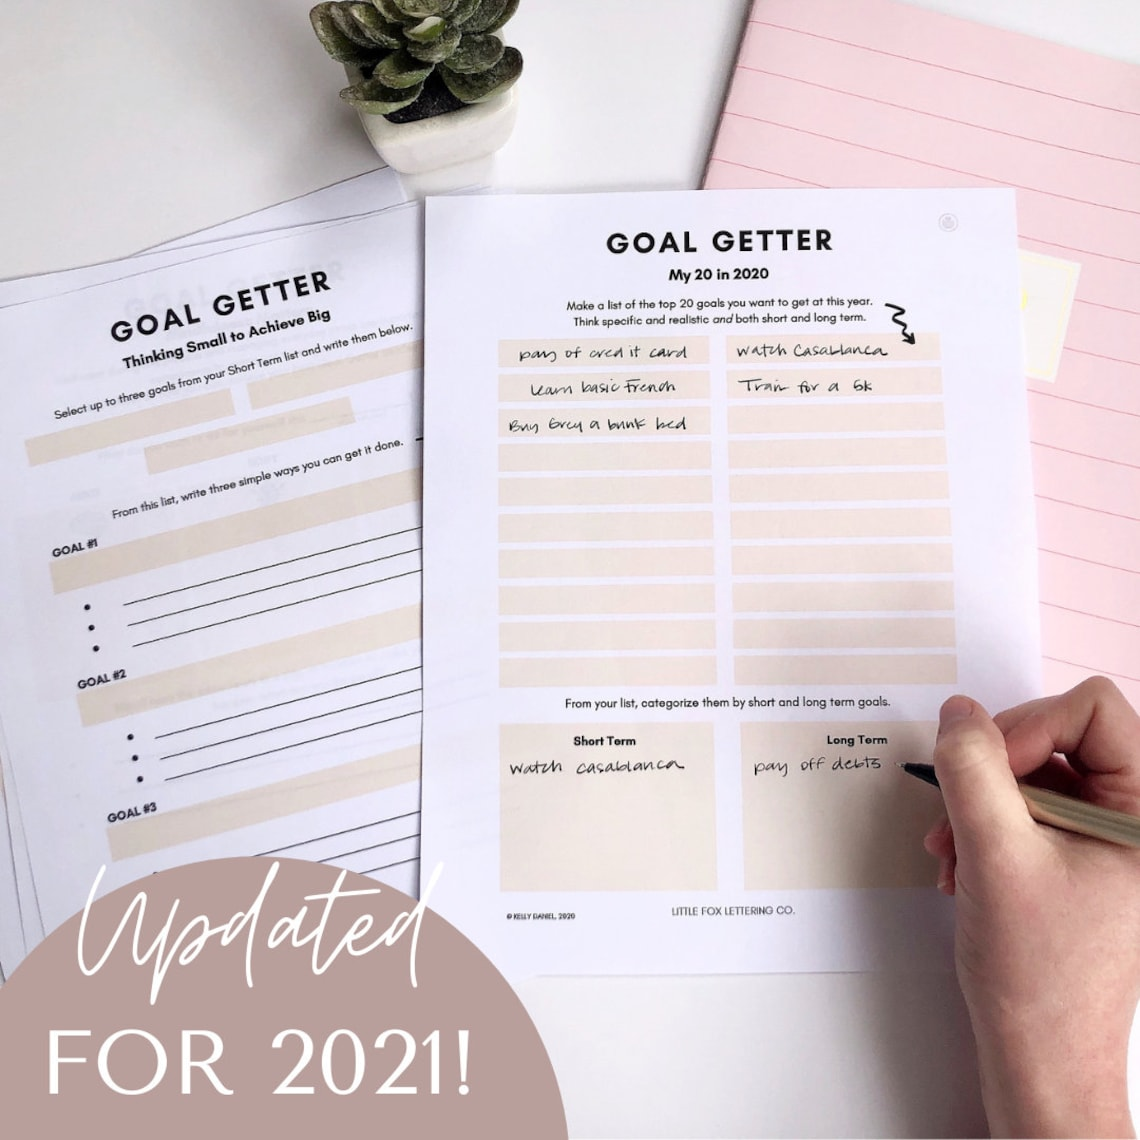 I created this helpful e-journal last year to help me see and break down my long and short-term goals and make them more achievable. By breaking them down and thinking of ways to get them done, I found myself really making headway.